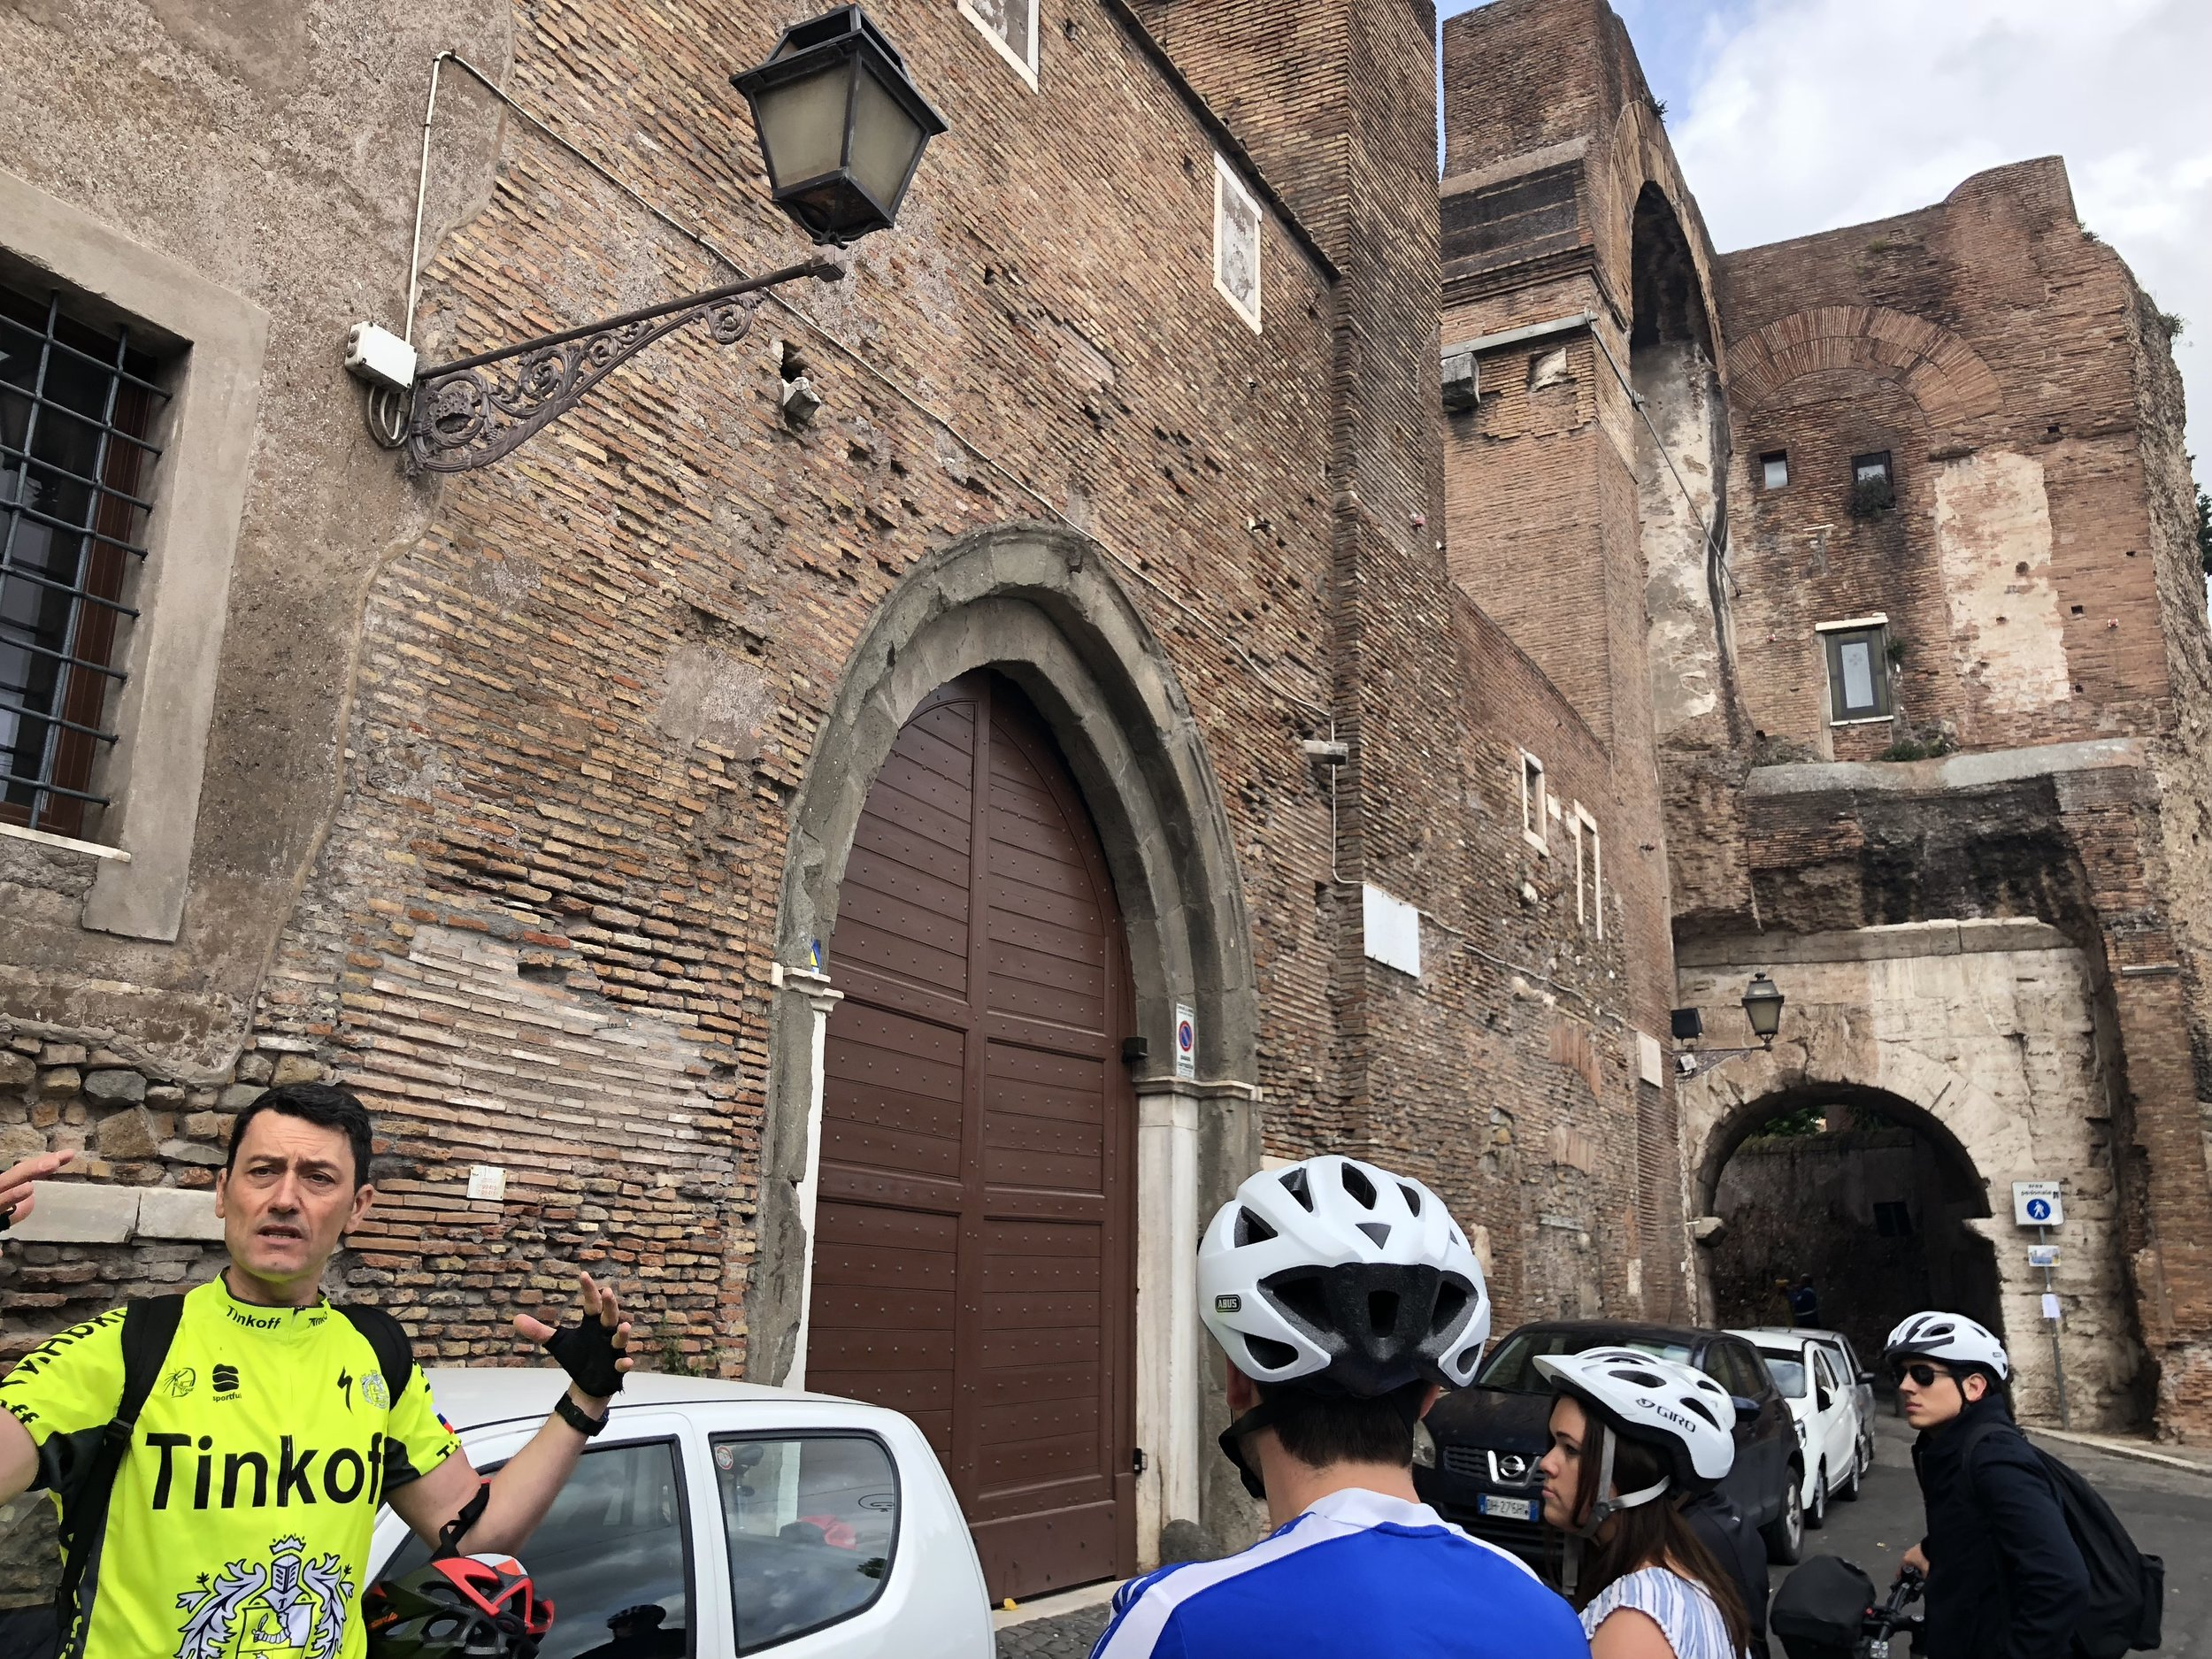 First stop on the bike tour: one of the seven hills of Rome.